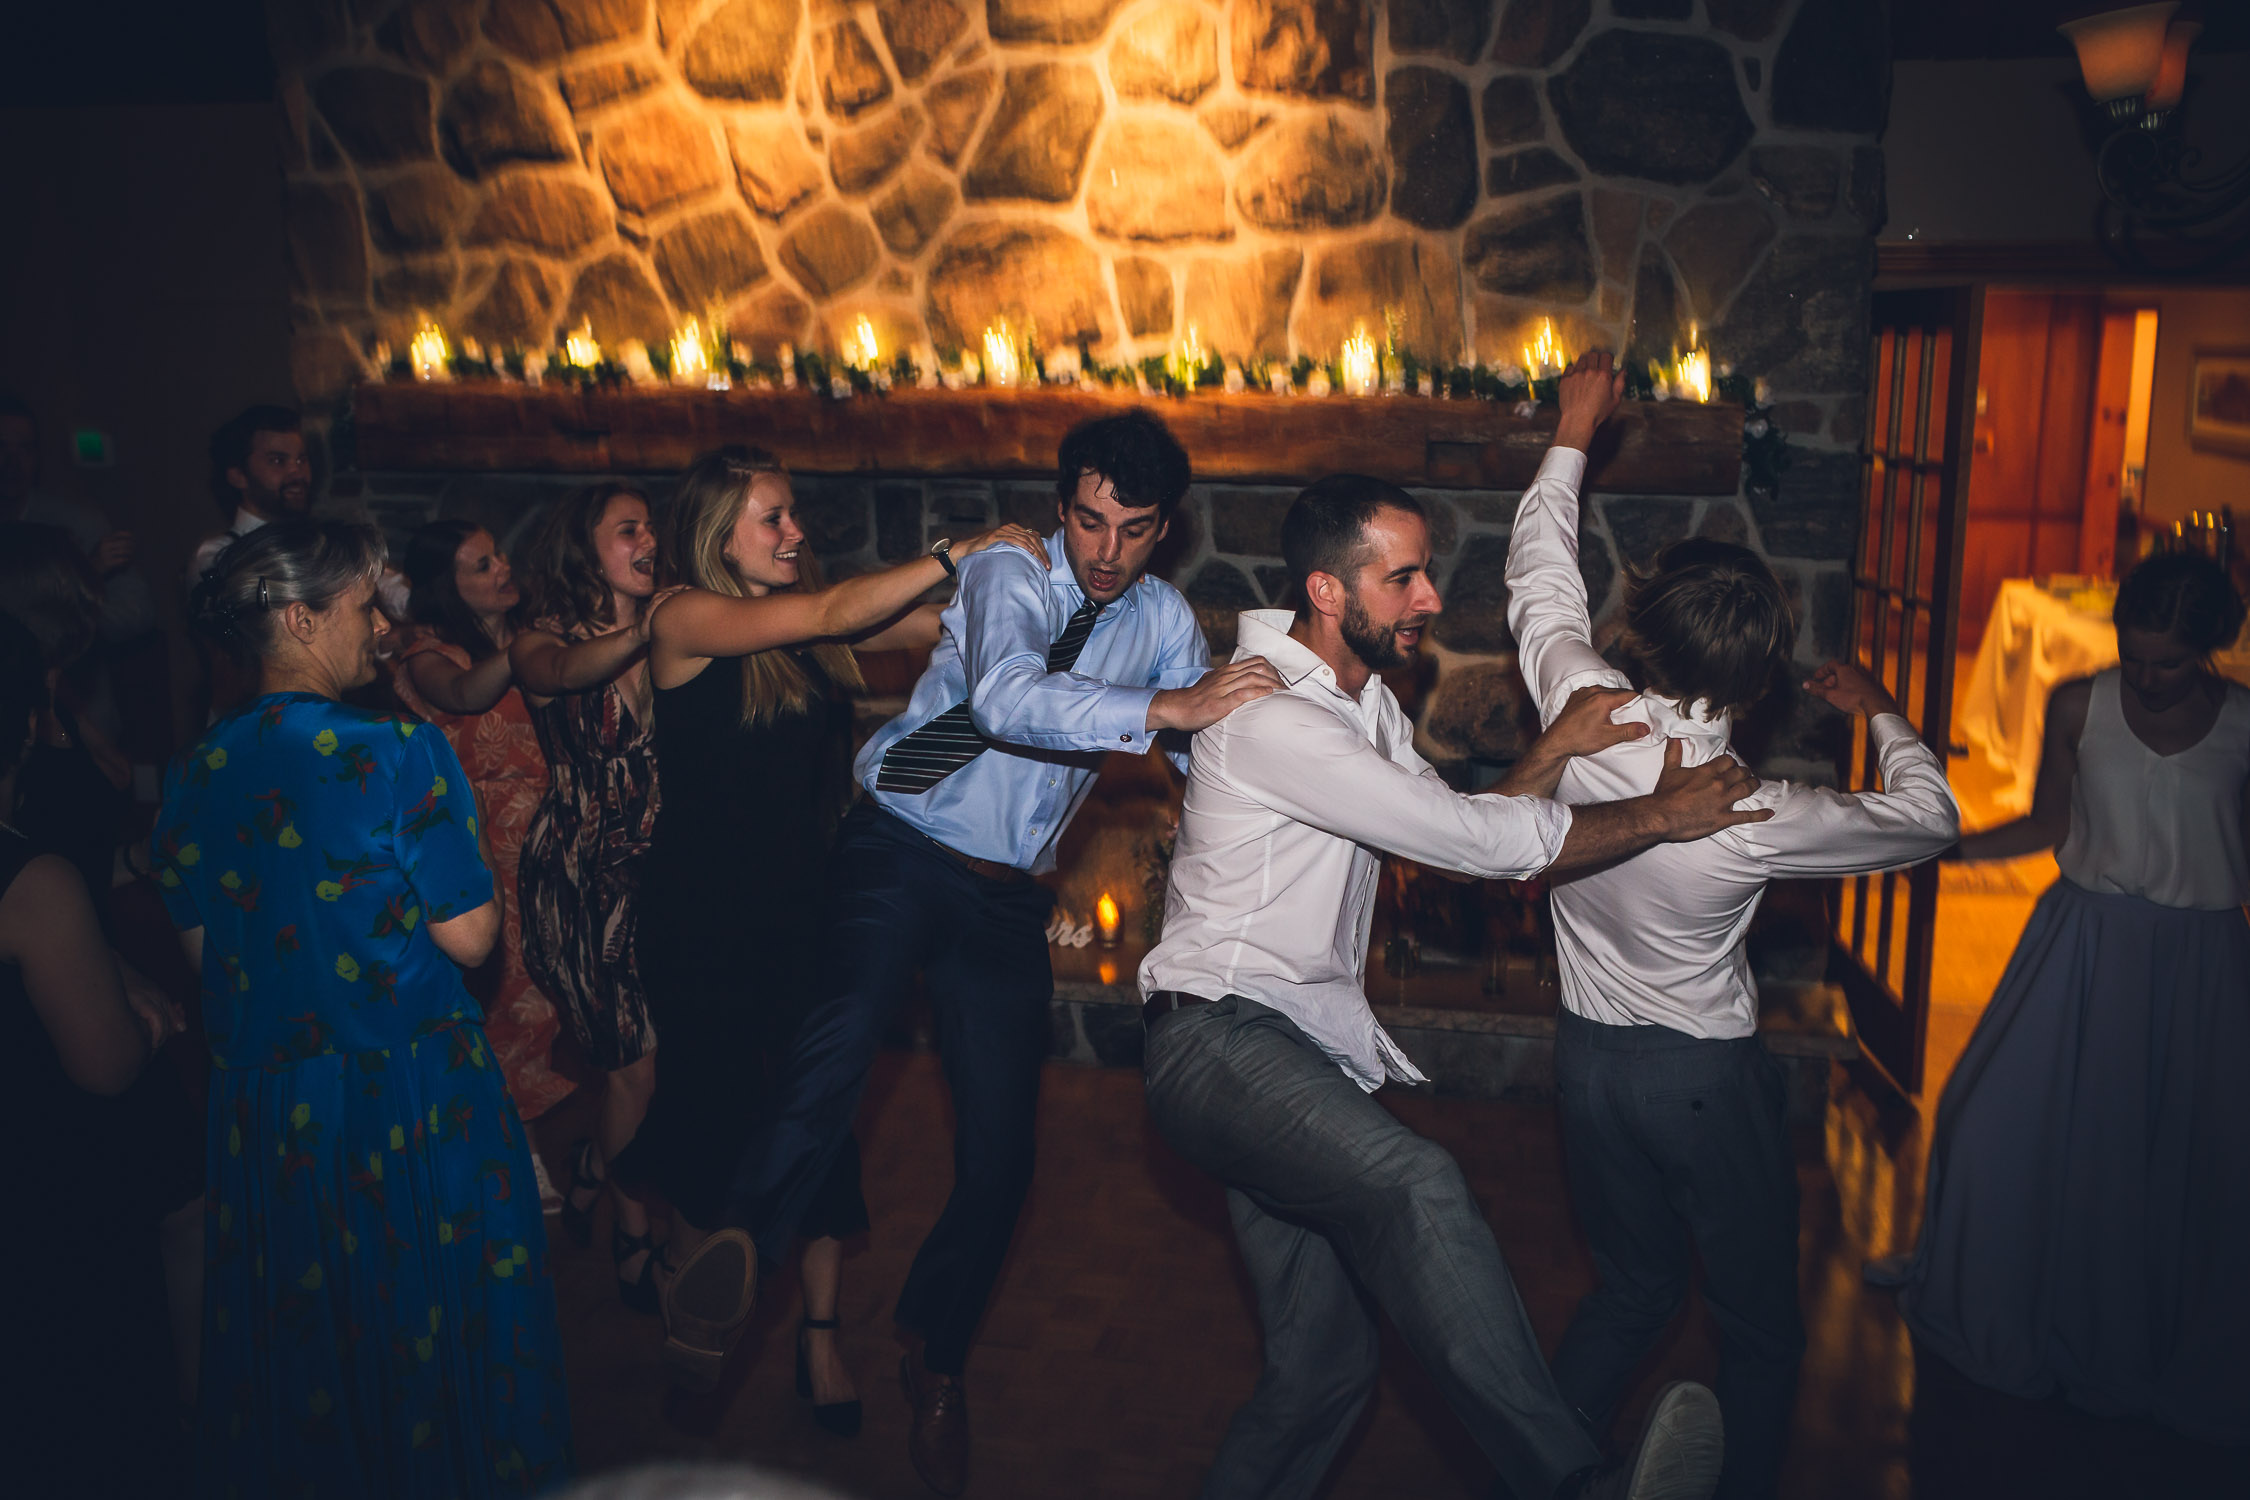 wedding-reception-dance.jpg